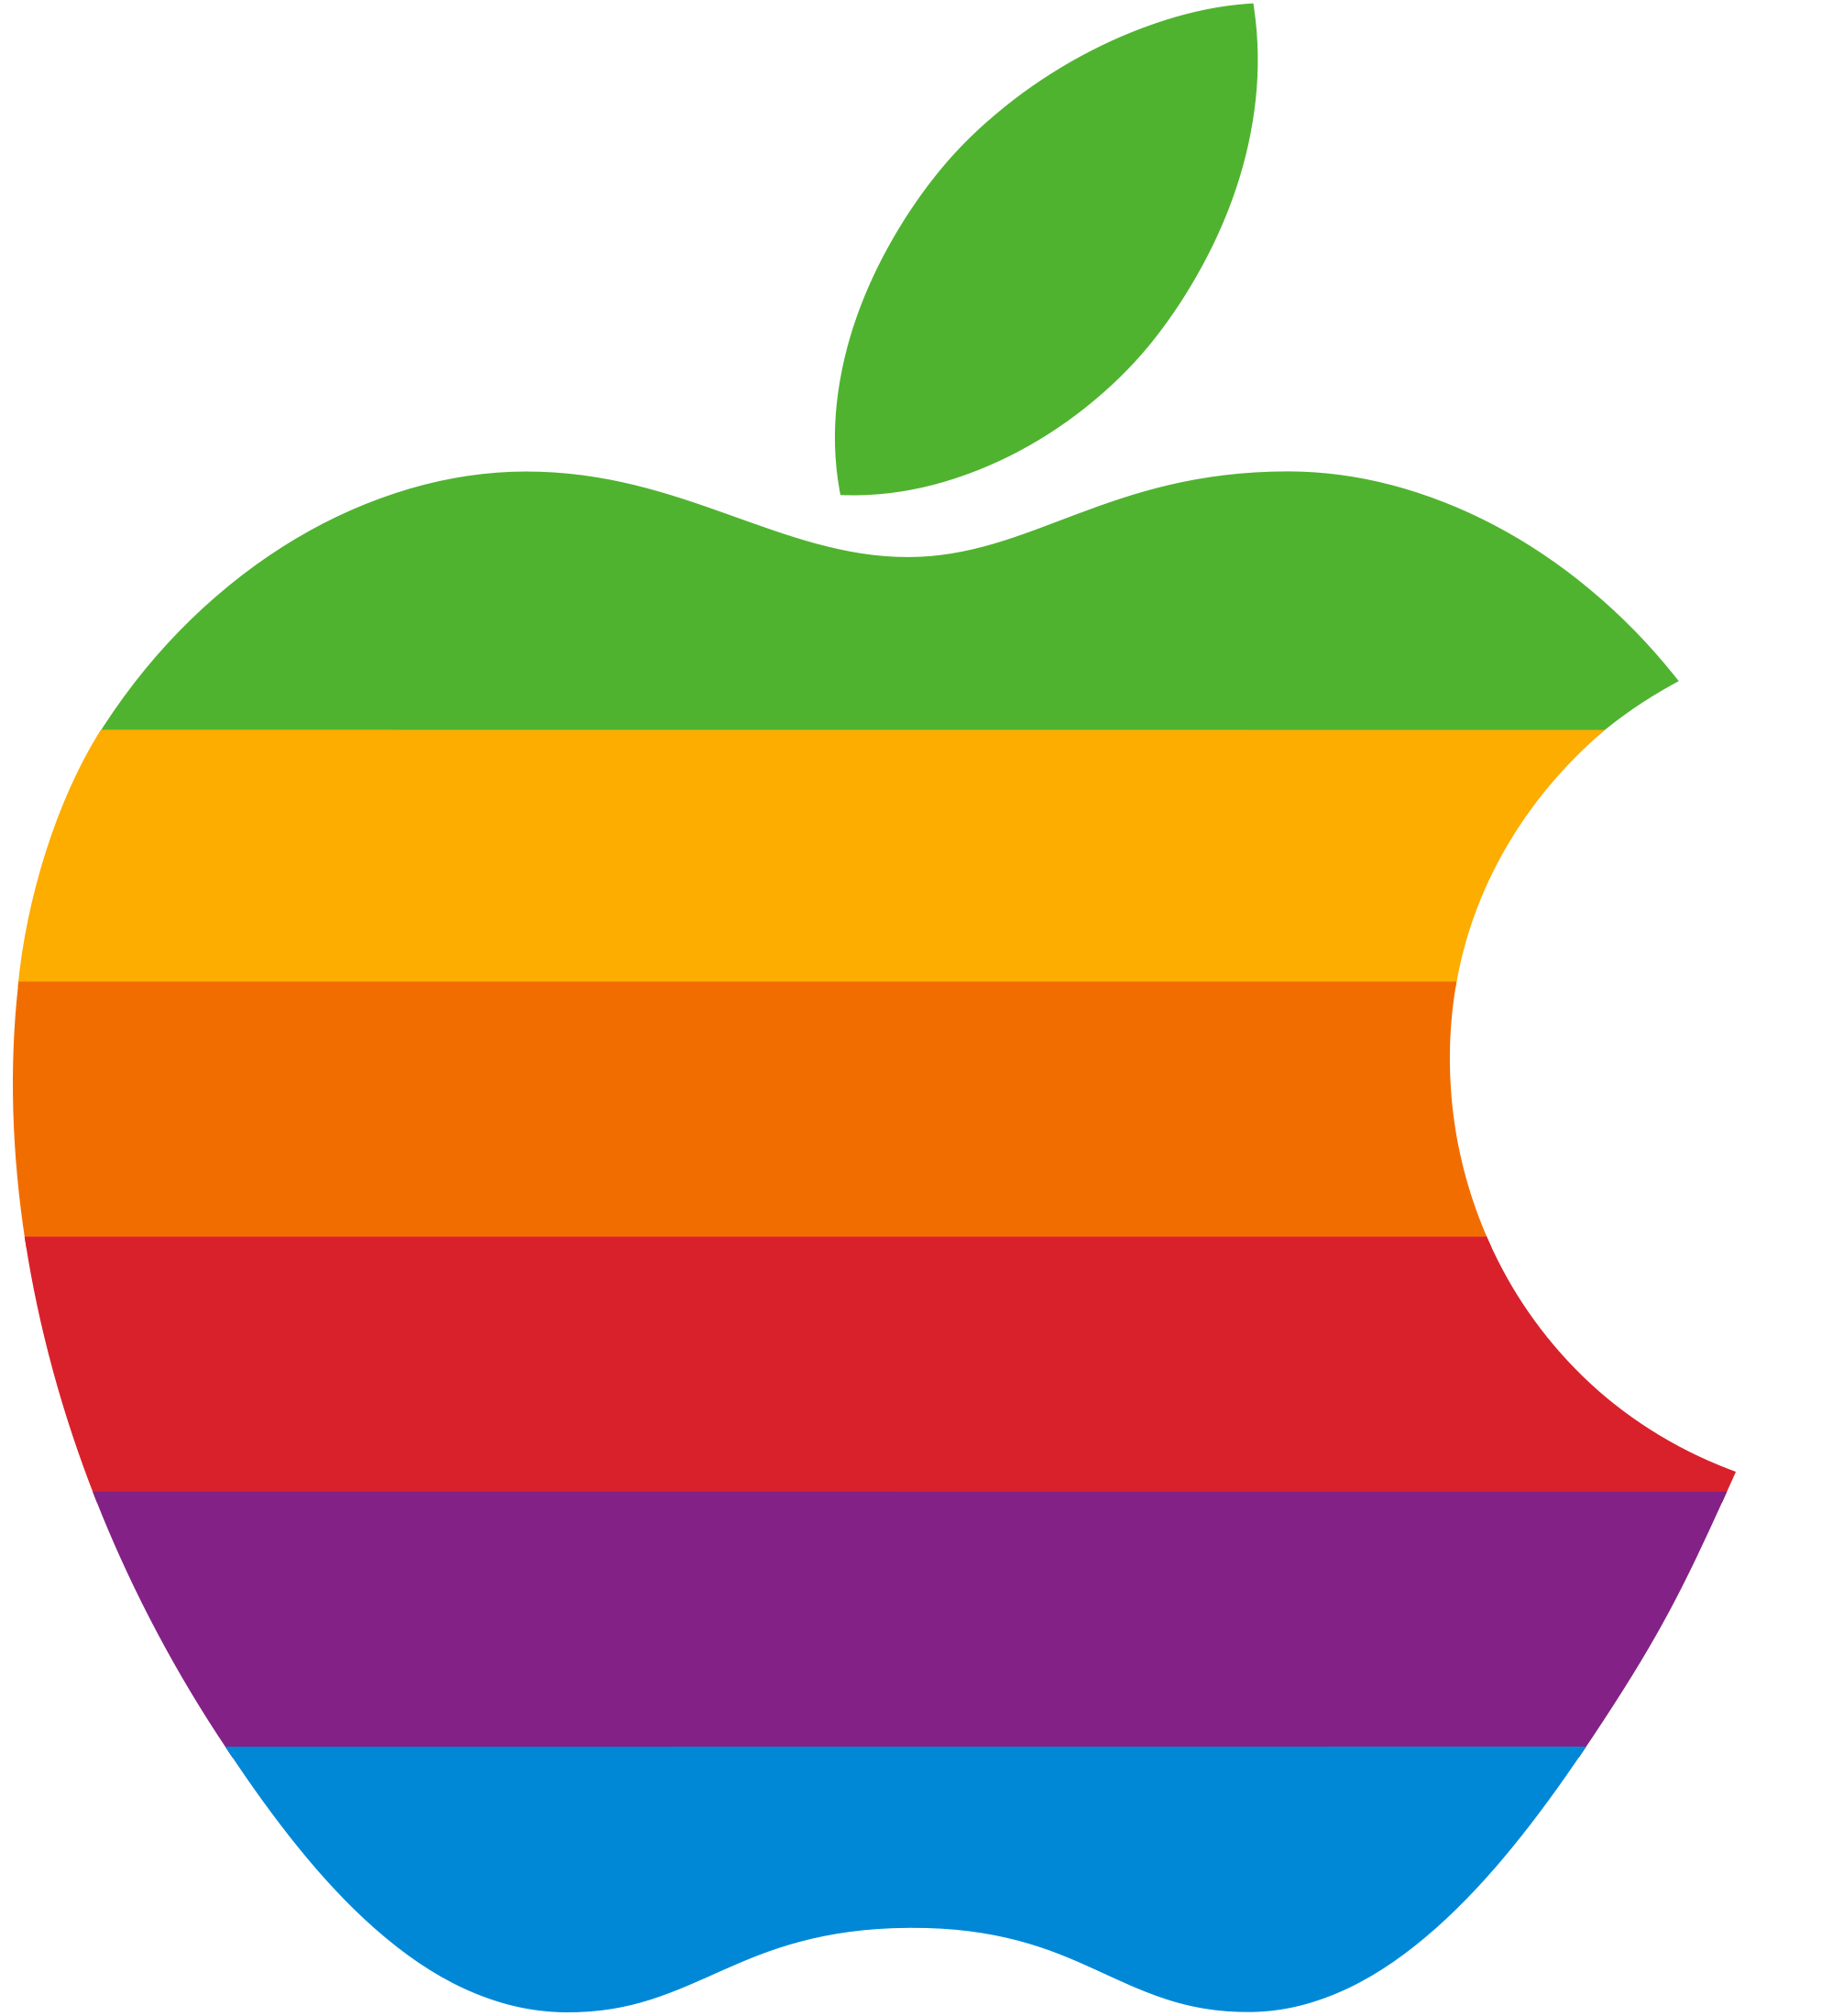 Rainbow Apple logo Wallpaper